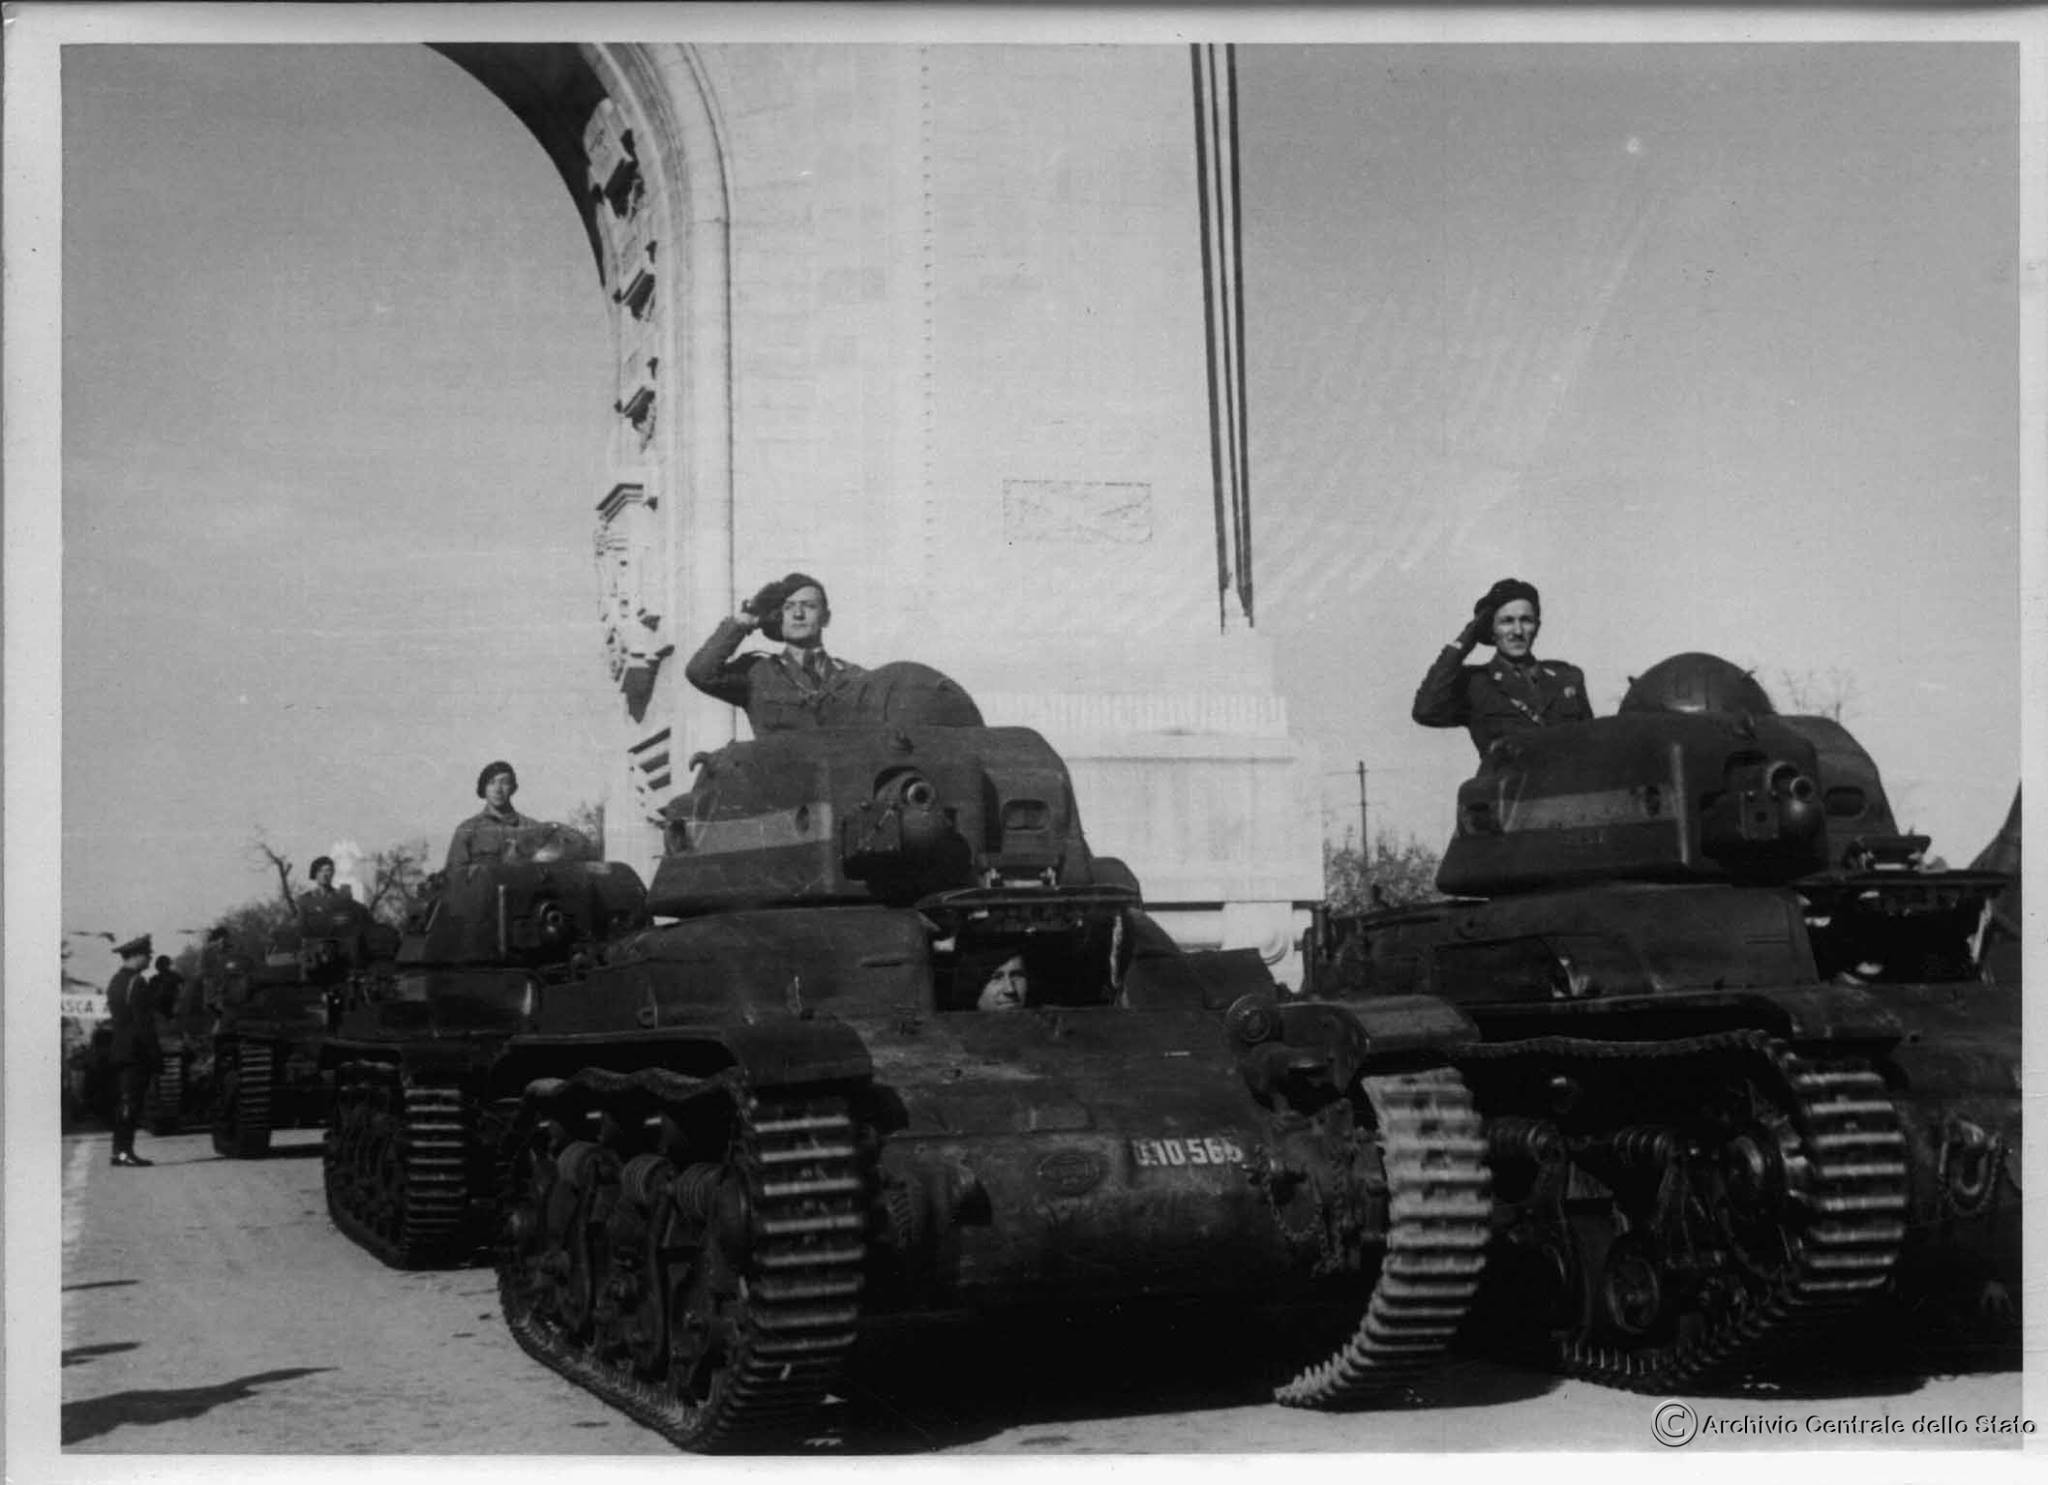 Romanian tankers parading in their Carul de Luptă R35 tanks after their successful invasion of Odessa.